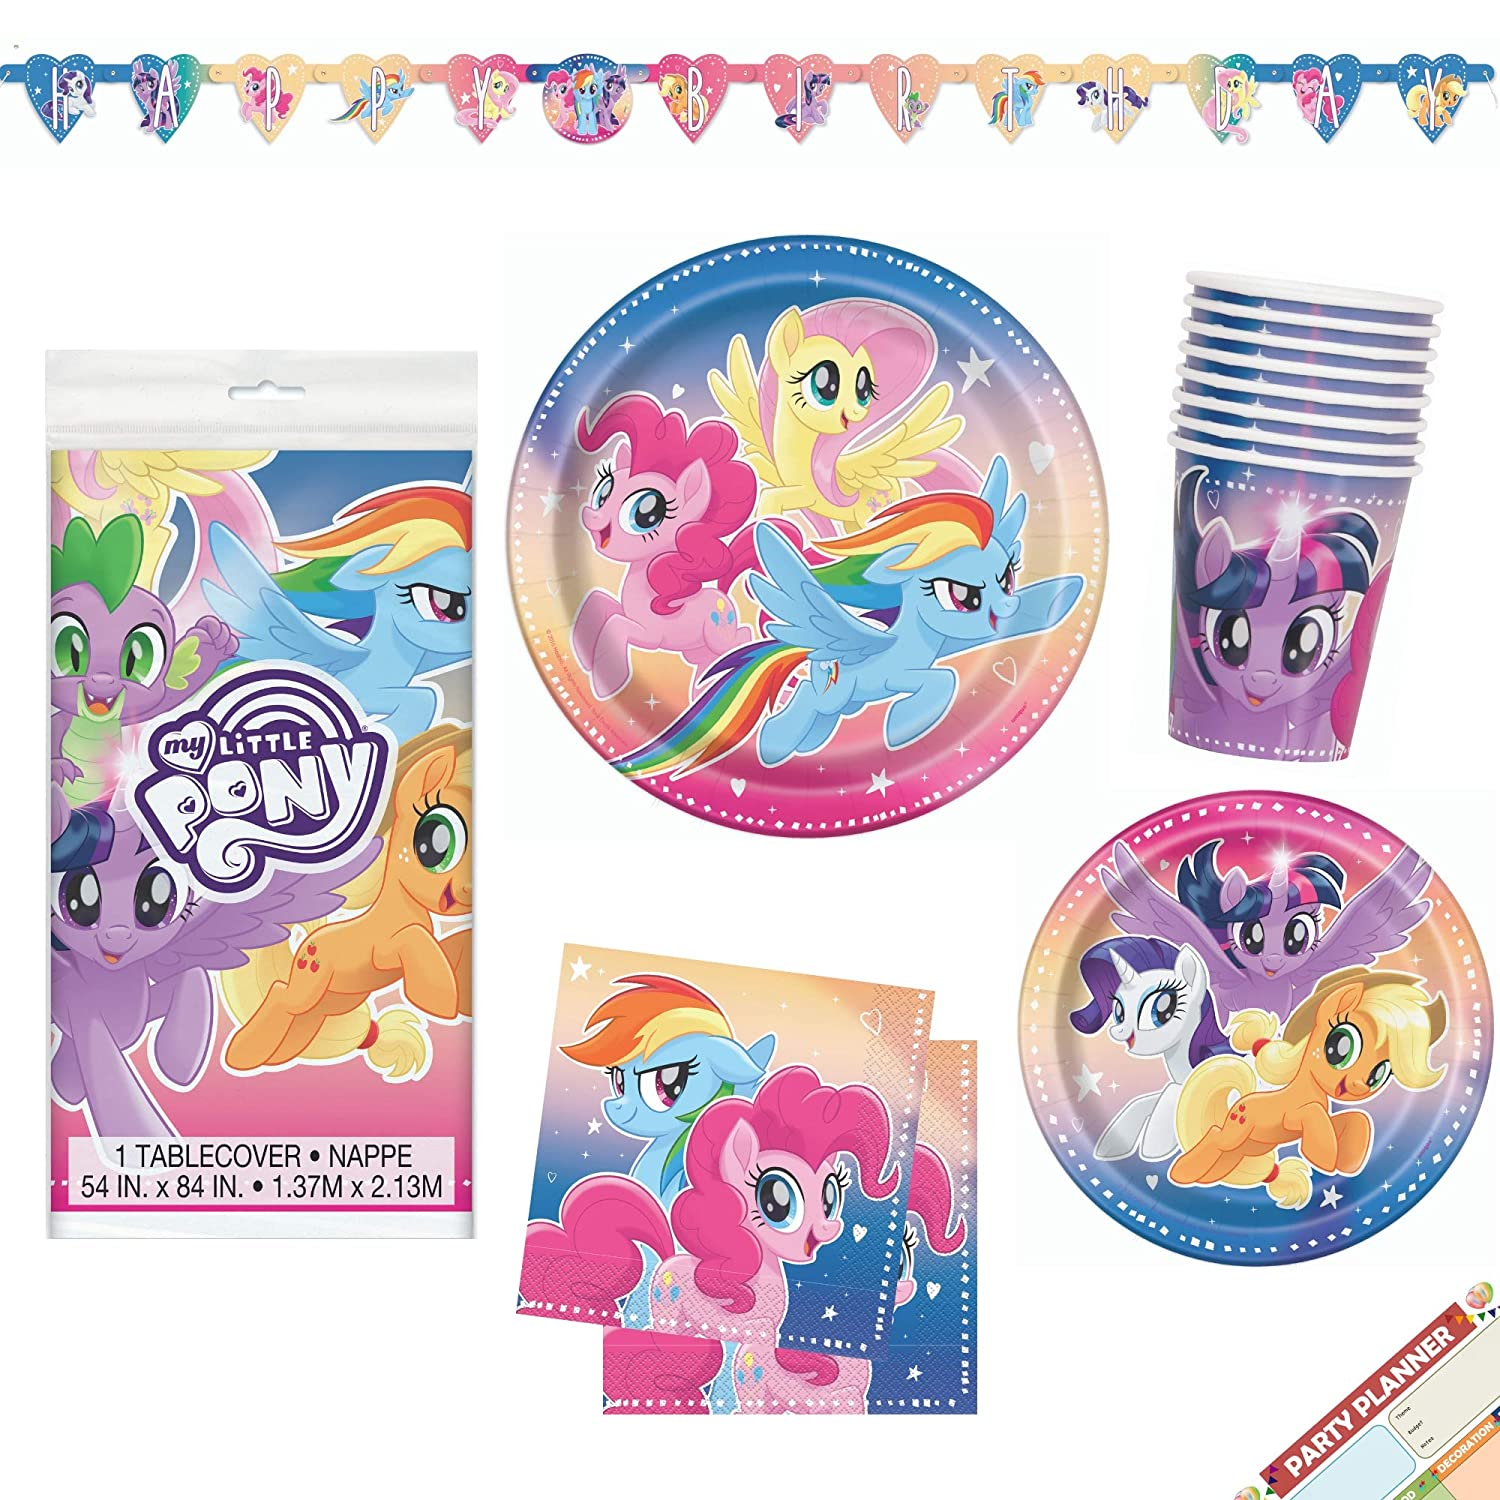 24 PONY PONIES HORSE Temporary Tattoos Girls Birthday Party Loot Bag Fillers